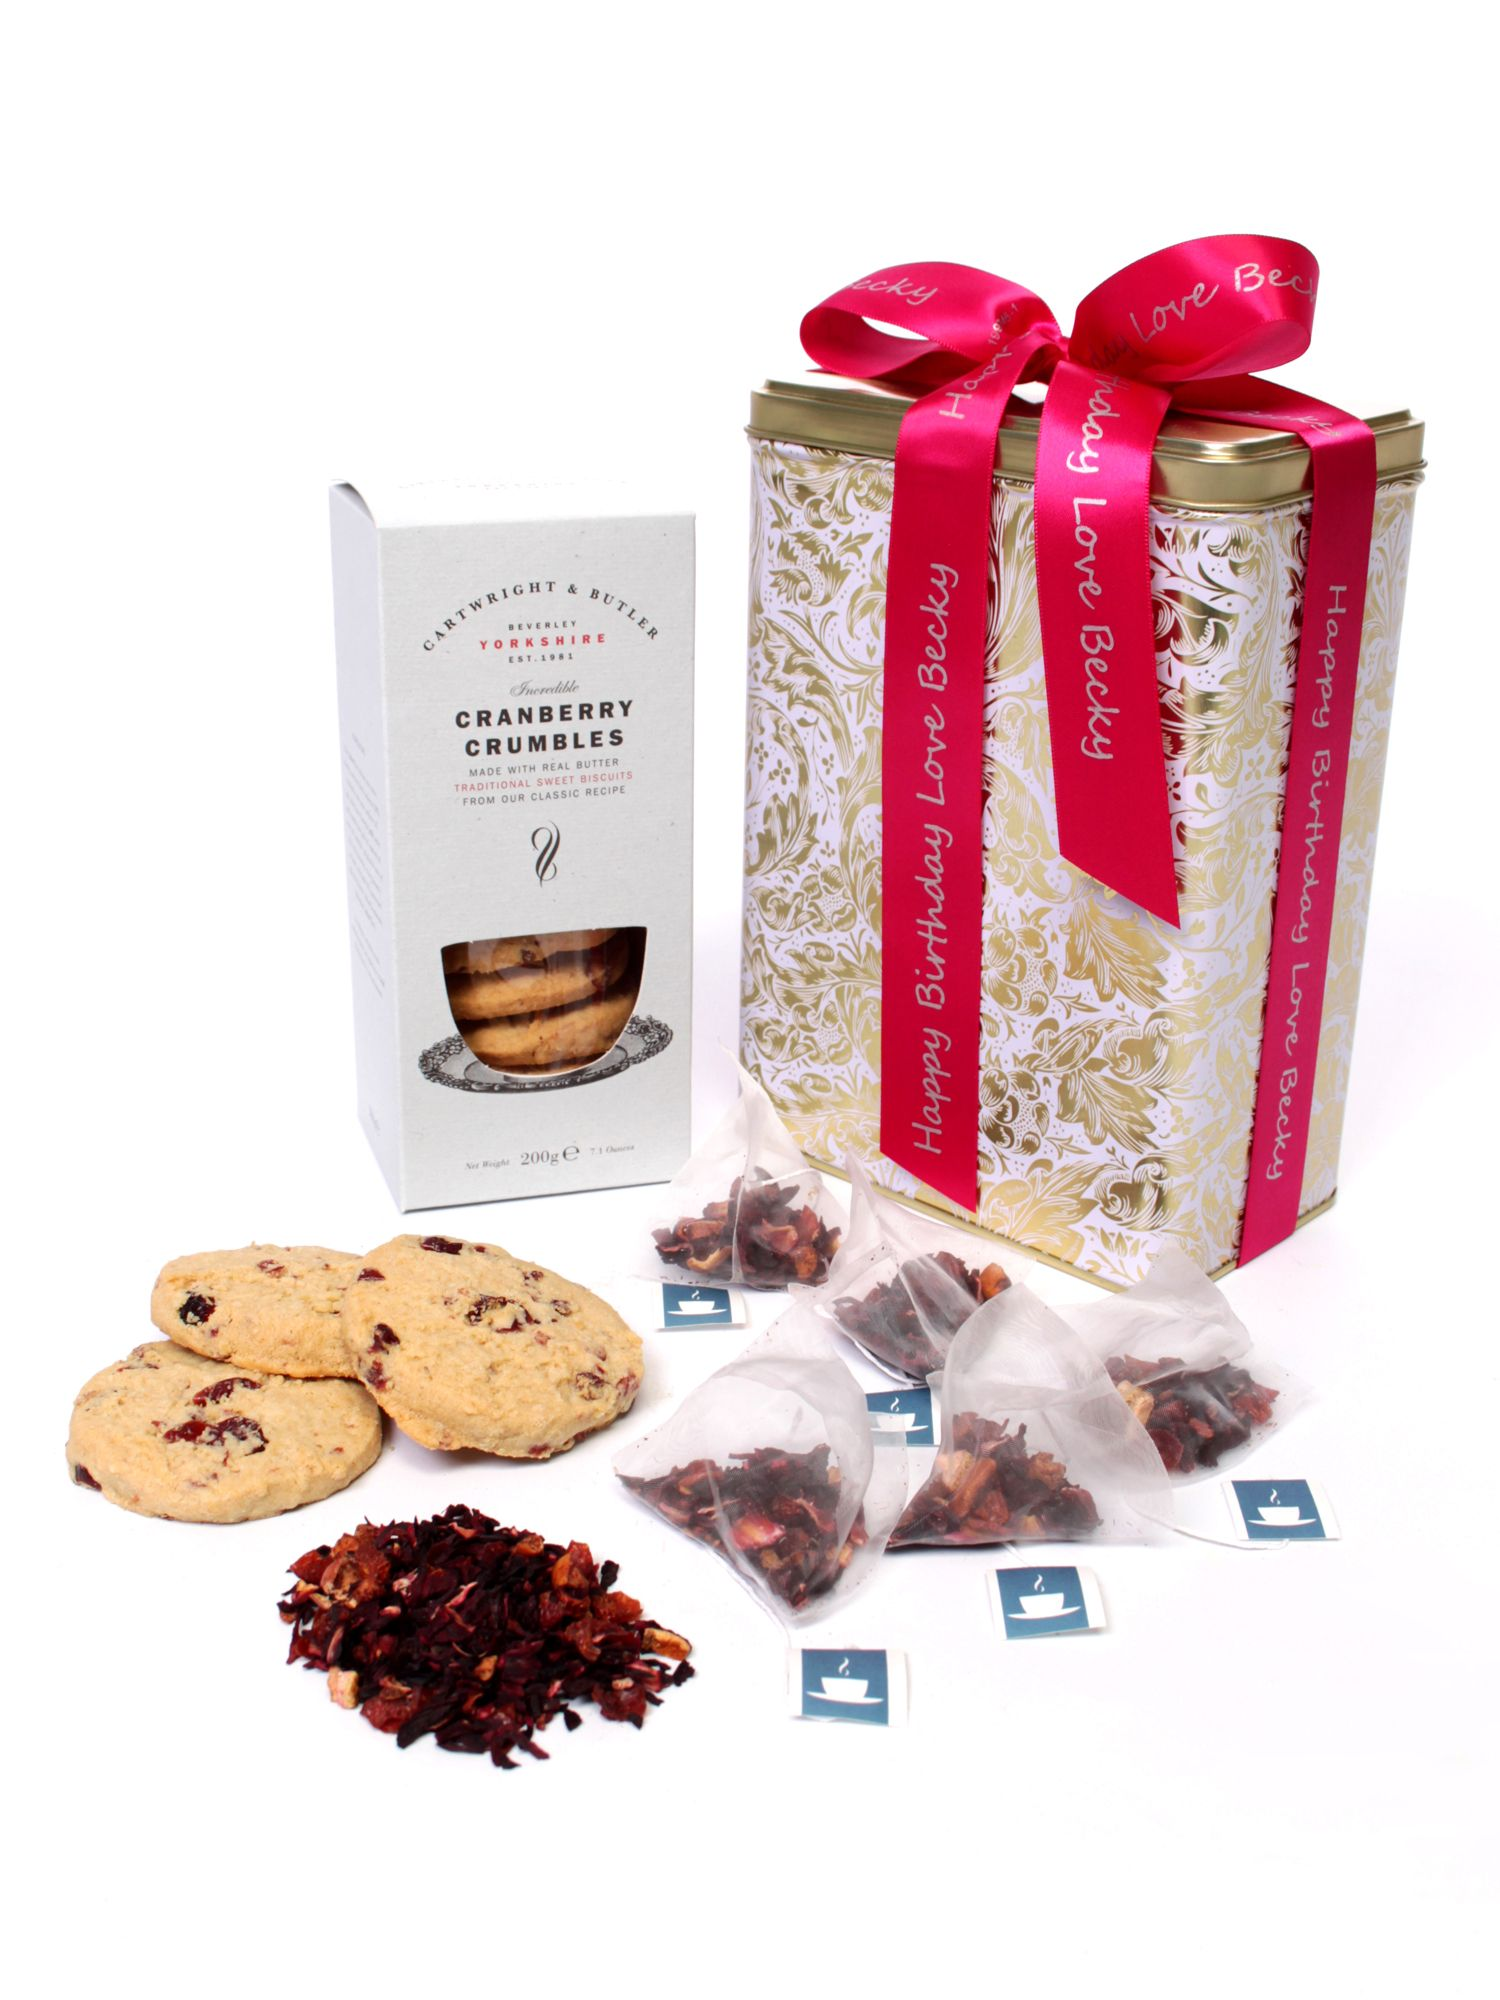 Floric Floric Red Berry Fruit Teas & Cranberry Crumble Biscuits